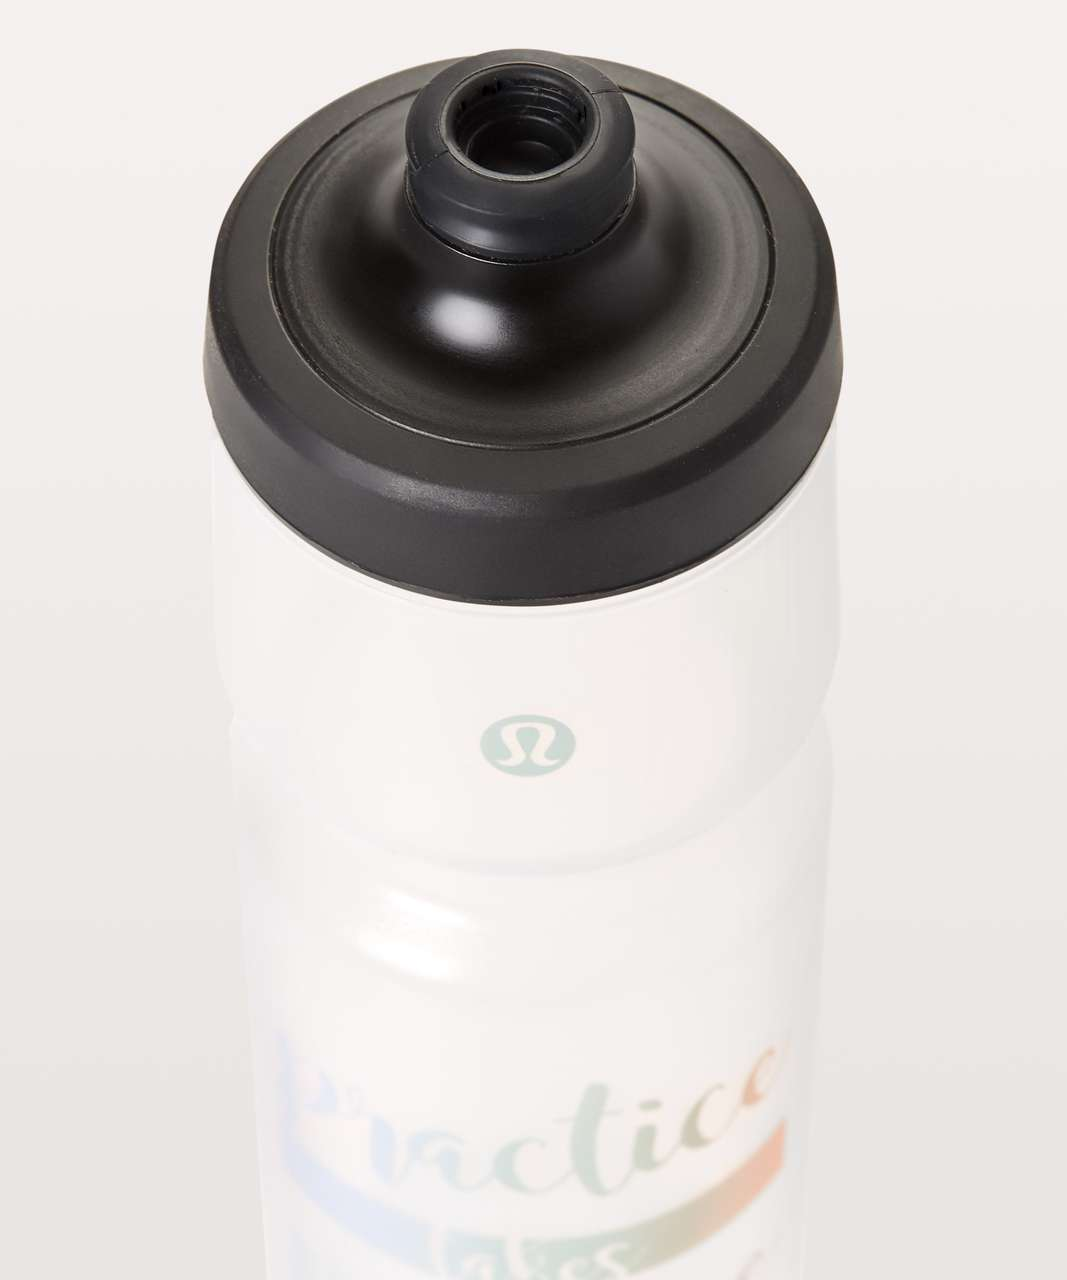 Lululemon Purist Cycling Water Bottle *26 oz - Purist Practice Takes Practice Breezy Tonic Sea